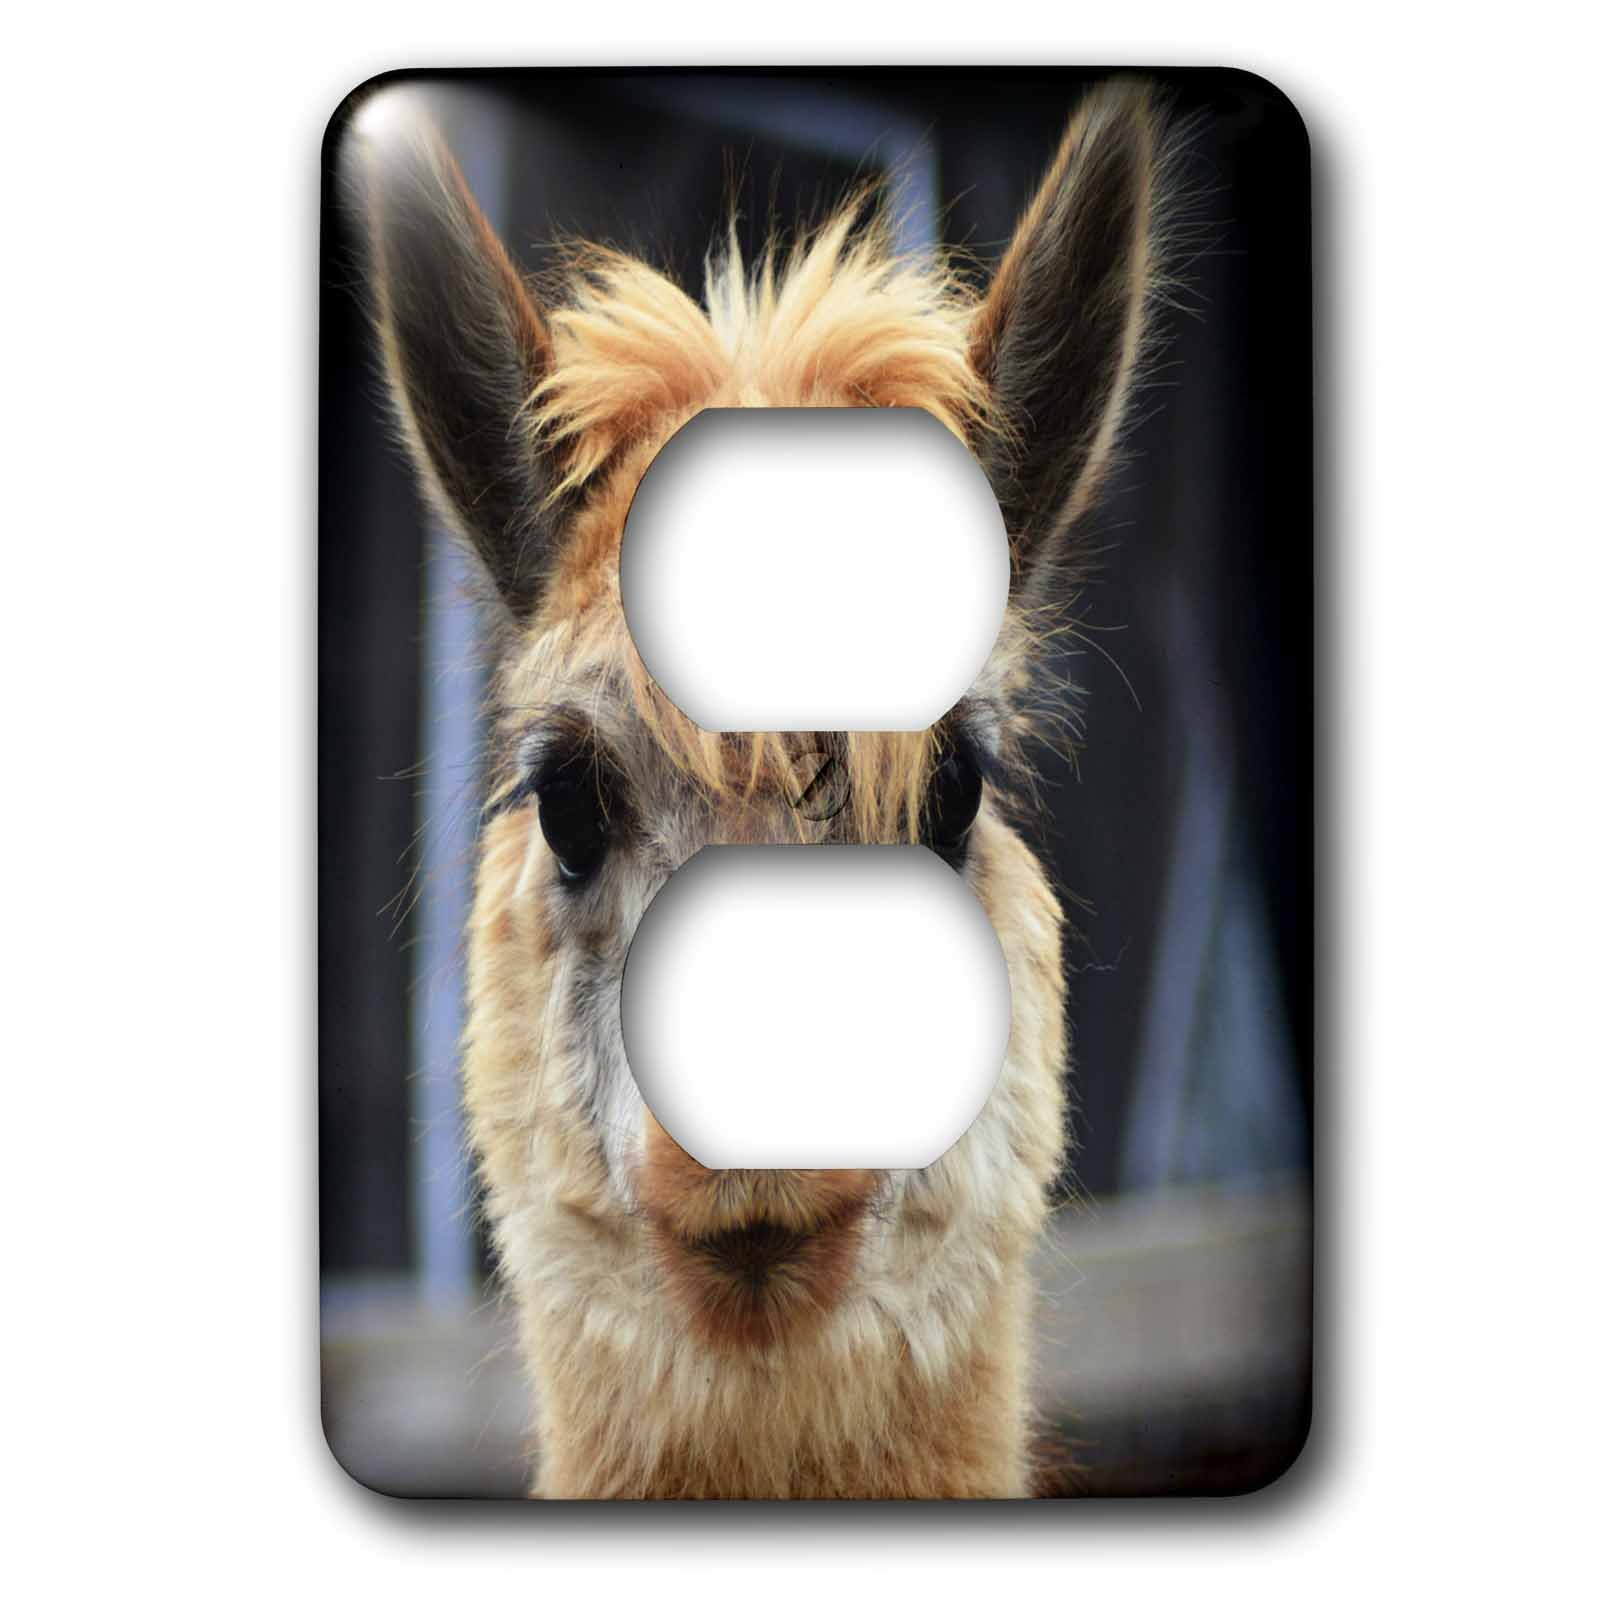 3dRose WhiteOaks Photography and Artwork - Lamas - Fuzzy Nose Lama is a photo of lama showing its fuzzy nose - Light Switch Covers - 2 plug outlet cover (lsp_265337_6)